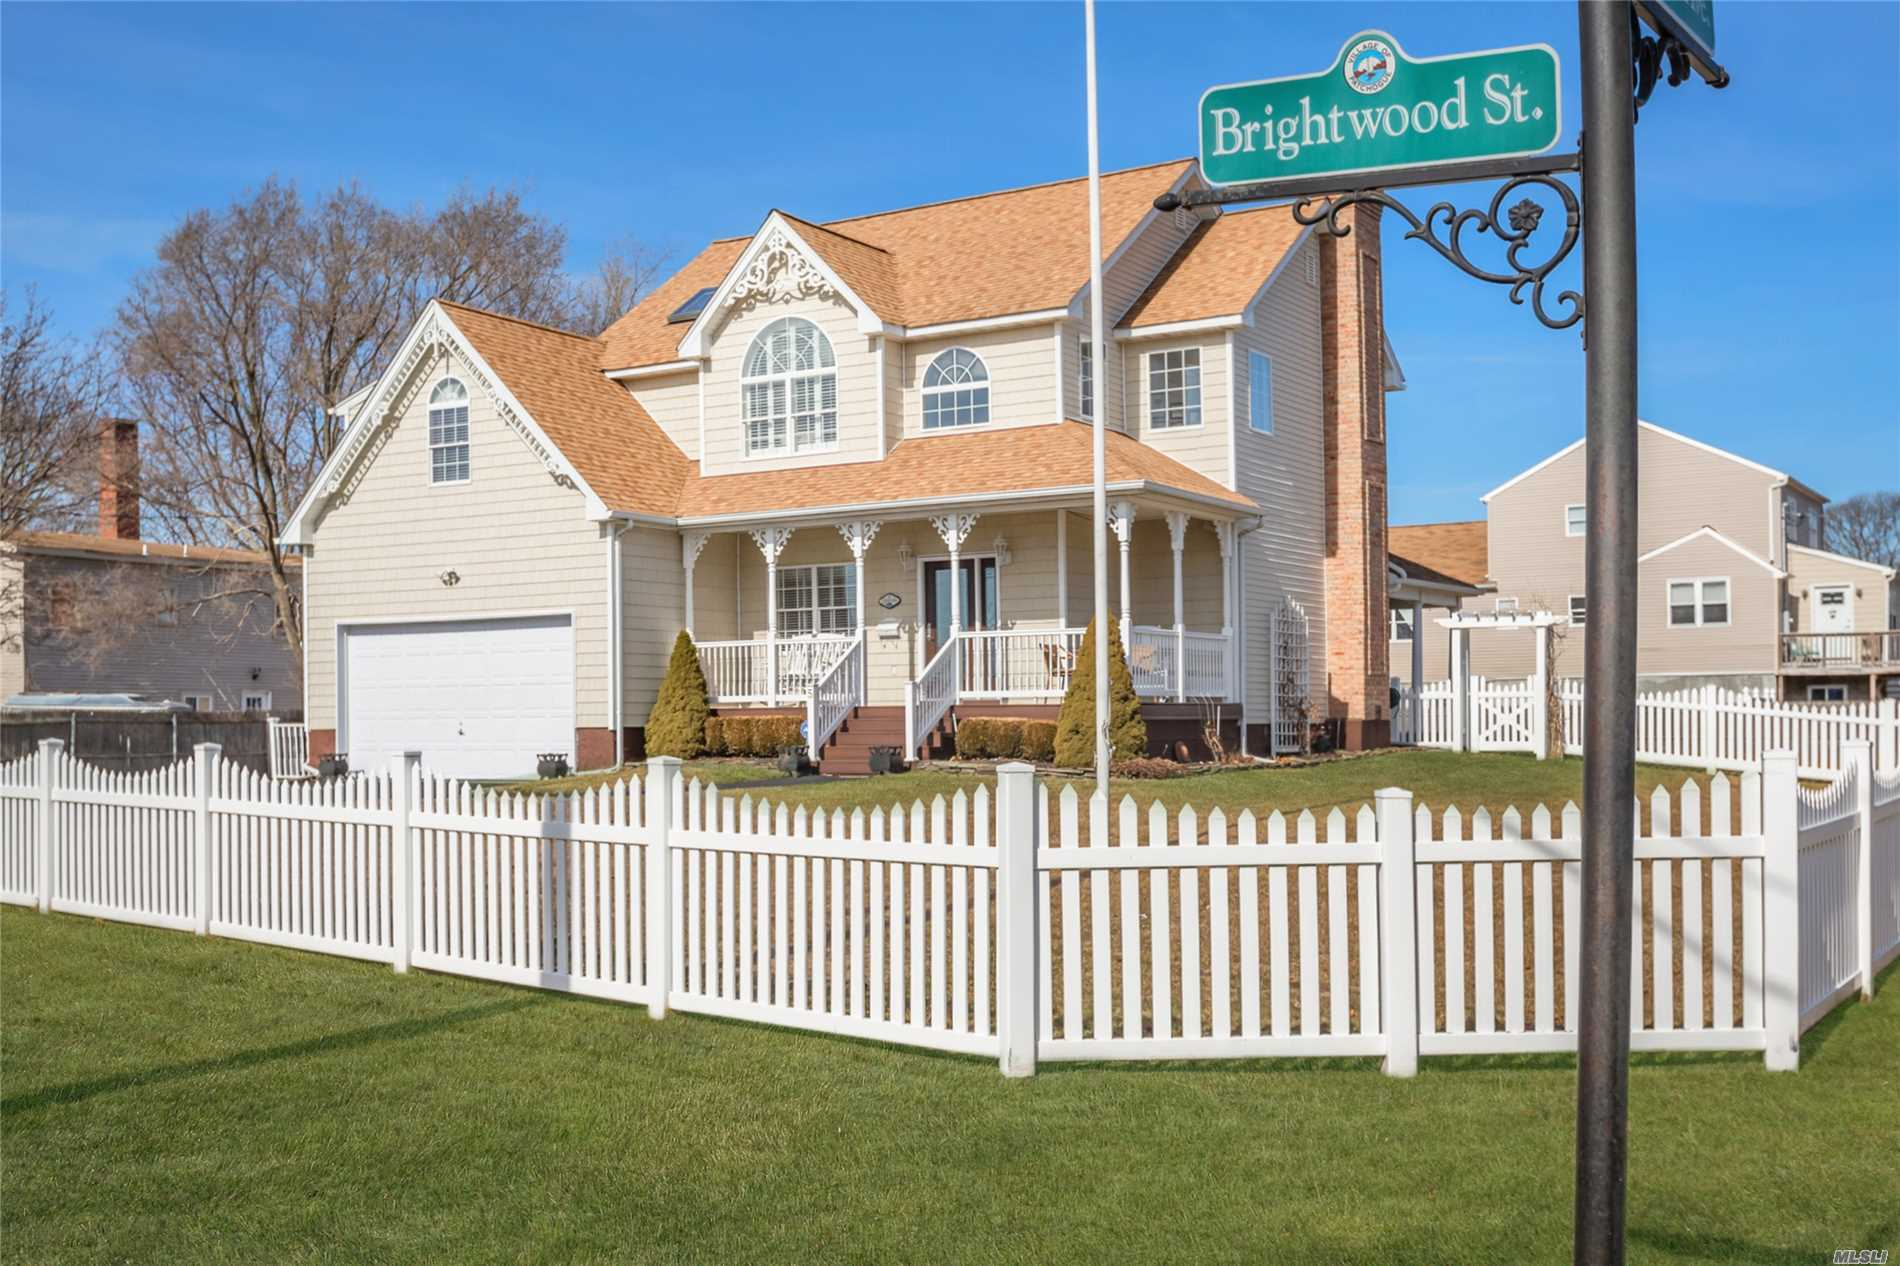 5 Brightwood St - Patchogue, New York